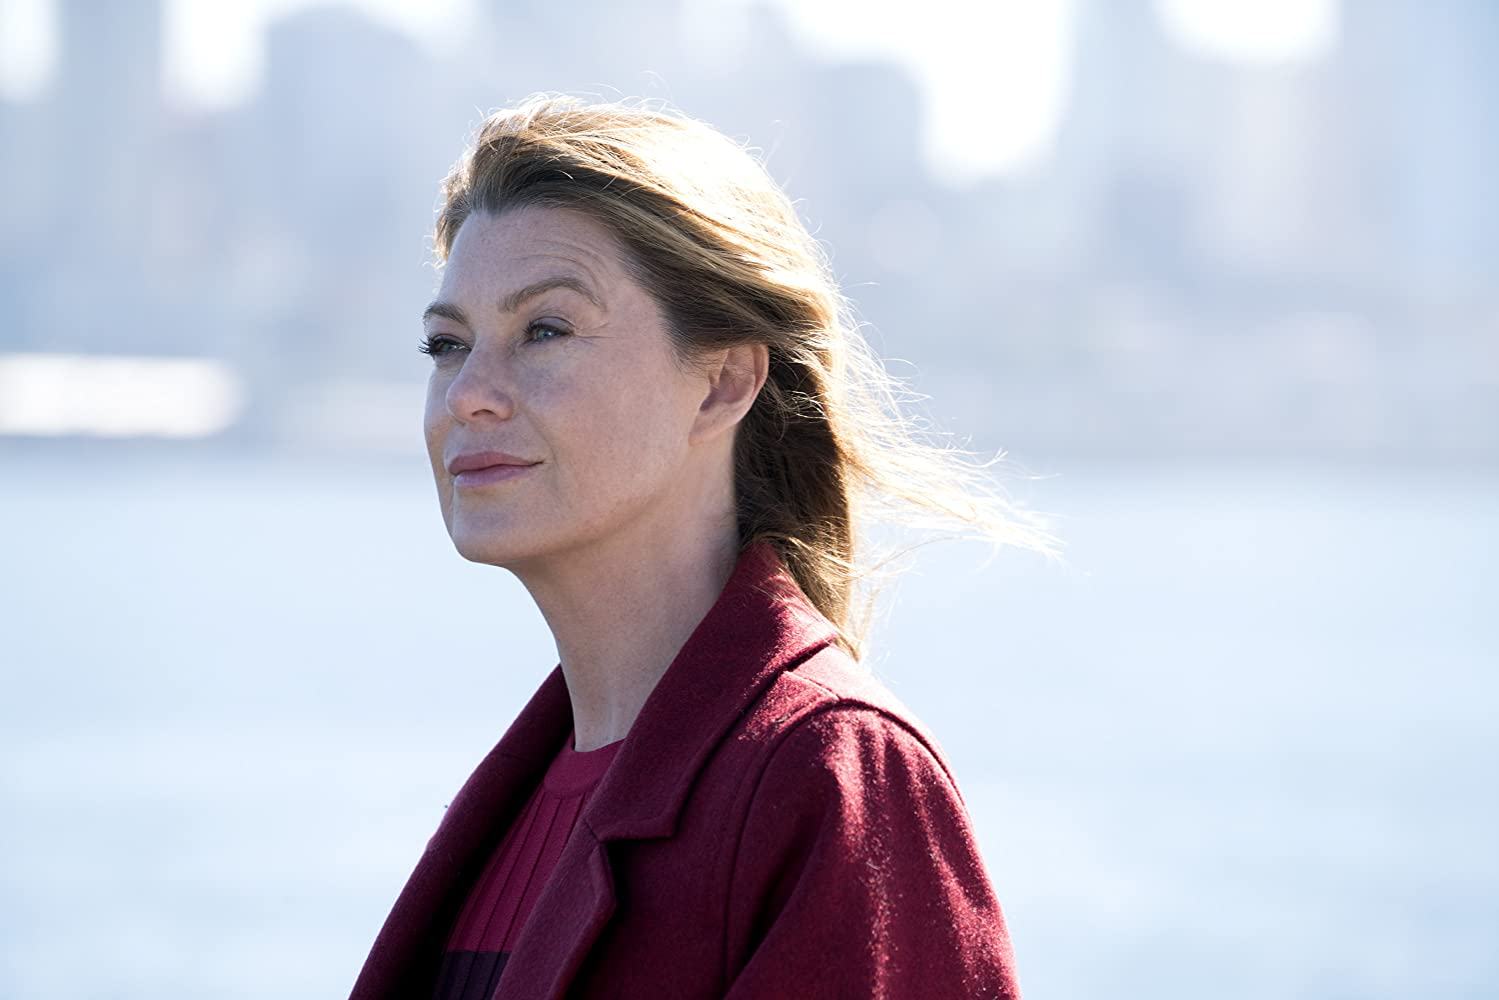 At This Point, Ellen Pompeo Might Just Play Meredith Grey Forever